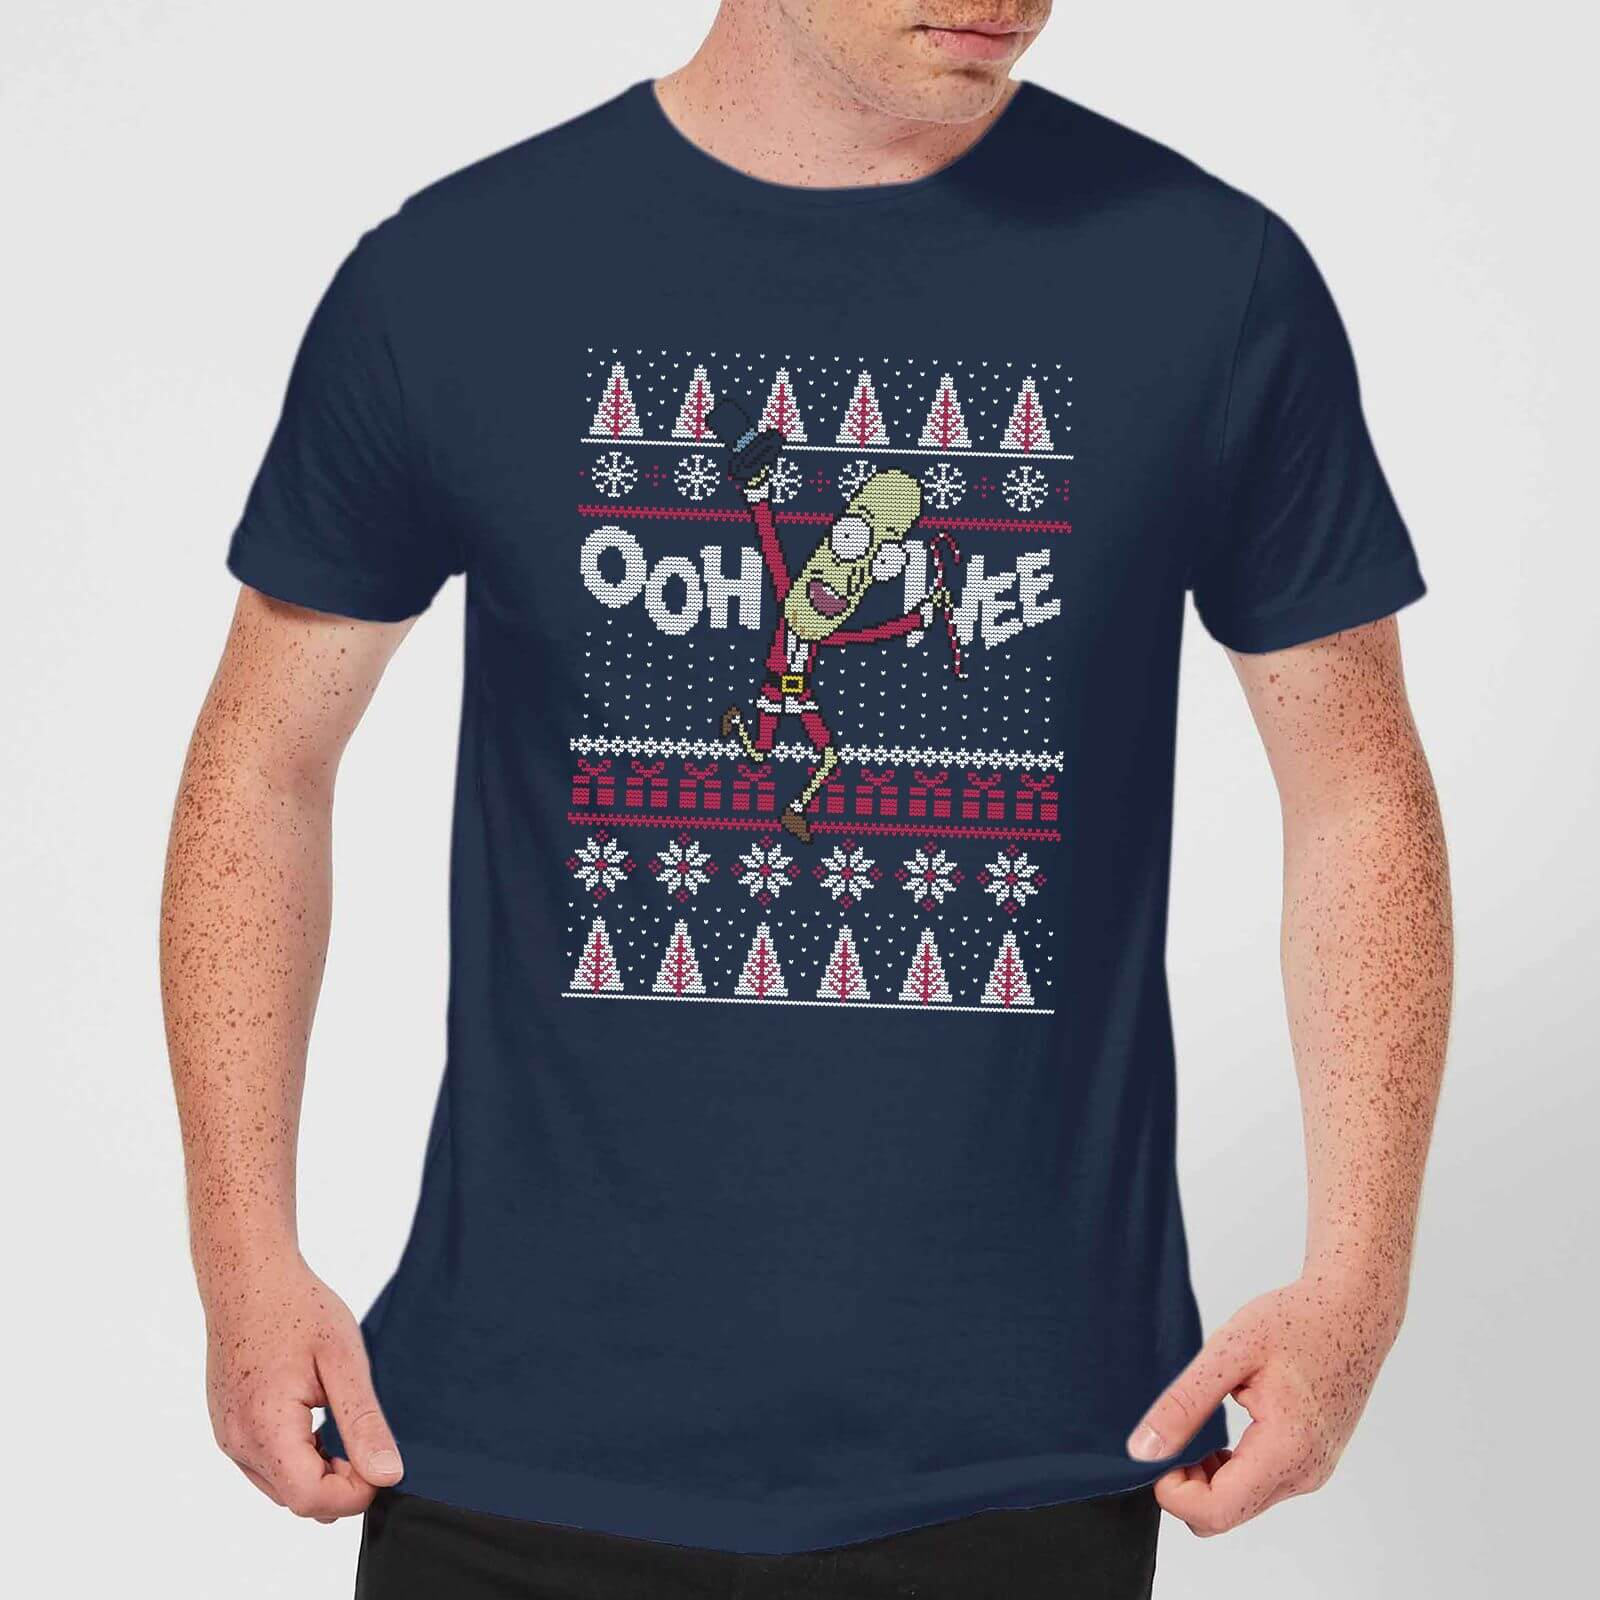 Rick and Morty Ooh Wee Men's Christmas T-Shirt - Navy - S - azul marino de Rick and Morty